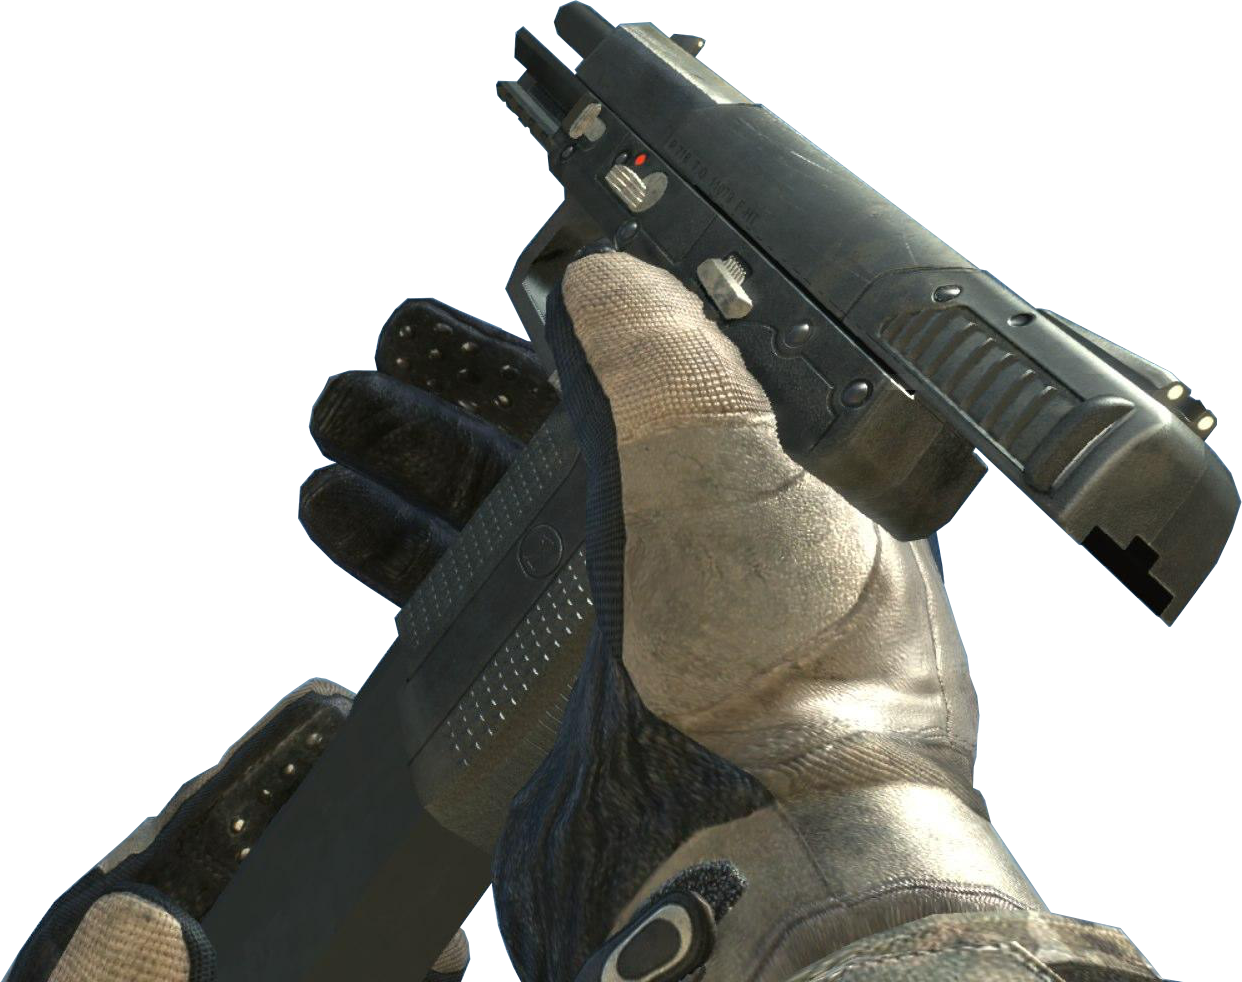 Image - Five Seven Dry Reloading MW3.png - The Call of ... M1216 Black Ops 2